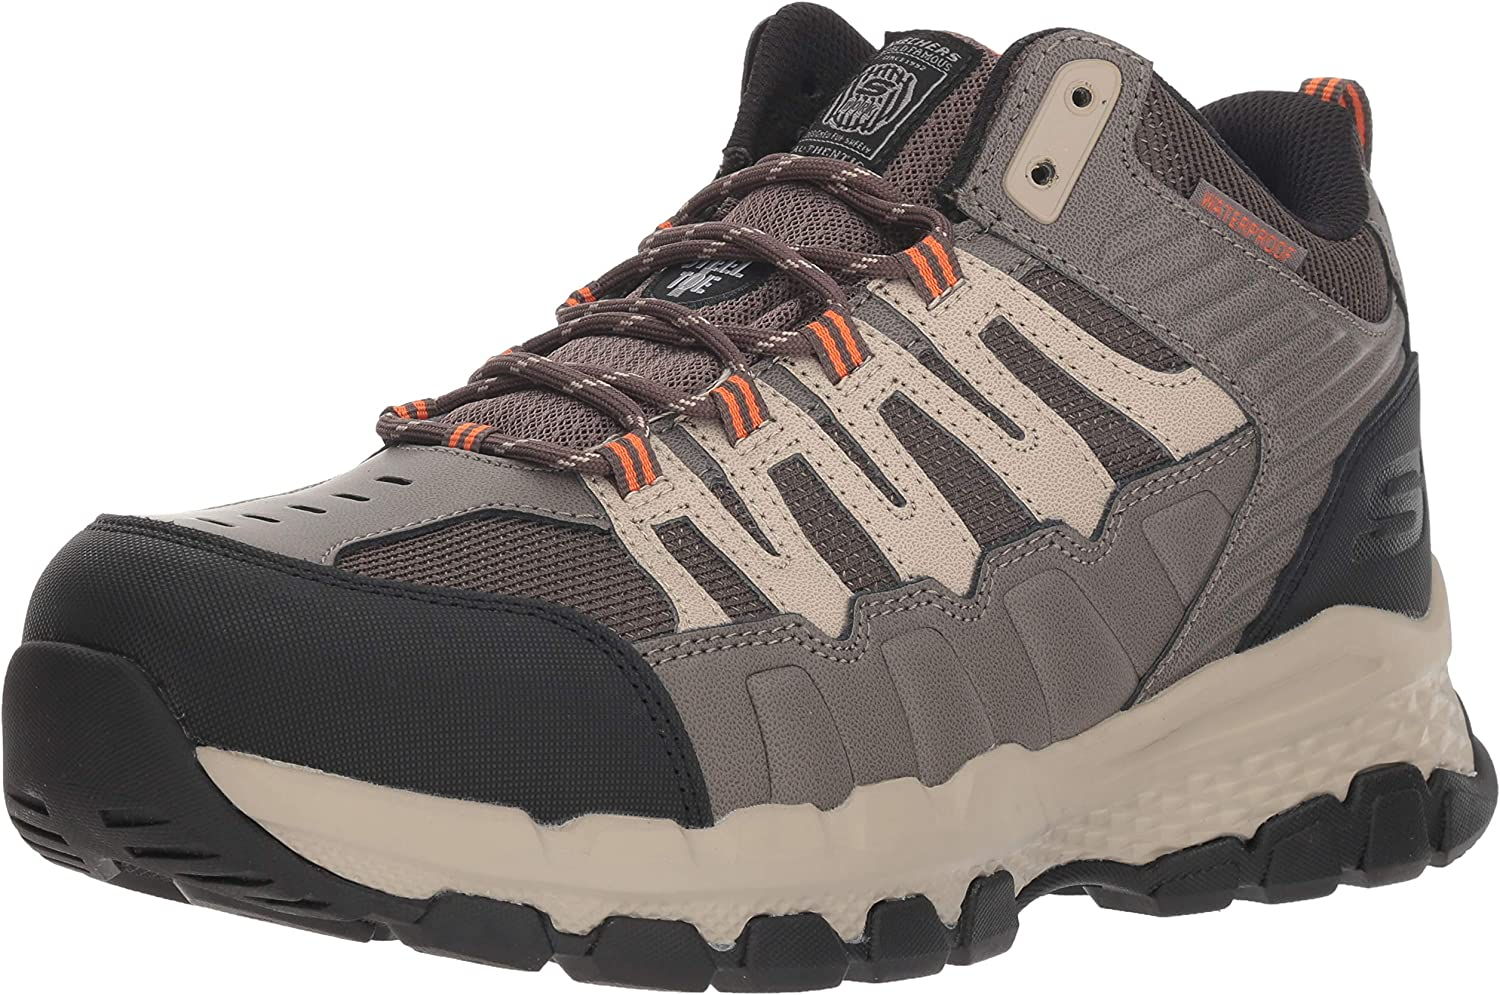 Skechers Fixed price for sale Men's Queznell Industrial free shipping Boot